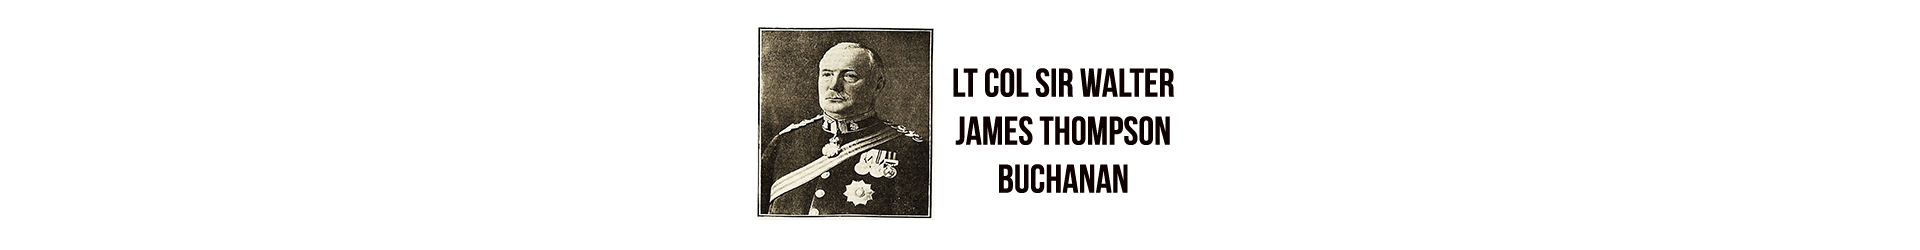 Lt Col Sir Walter James Thompson Buchanan K.C.I.E